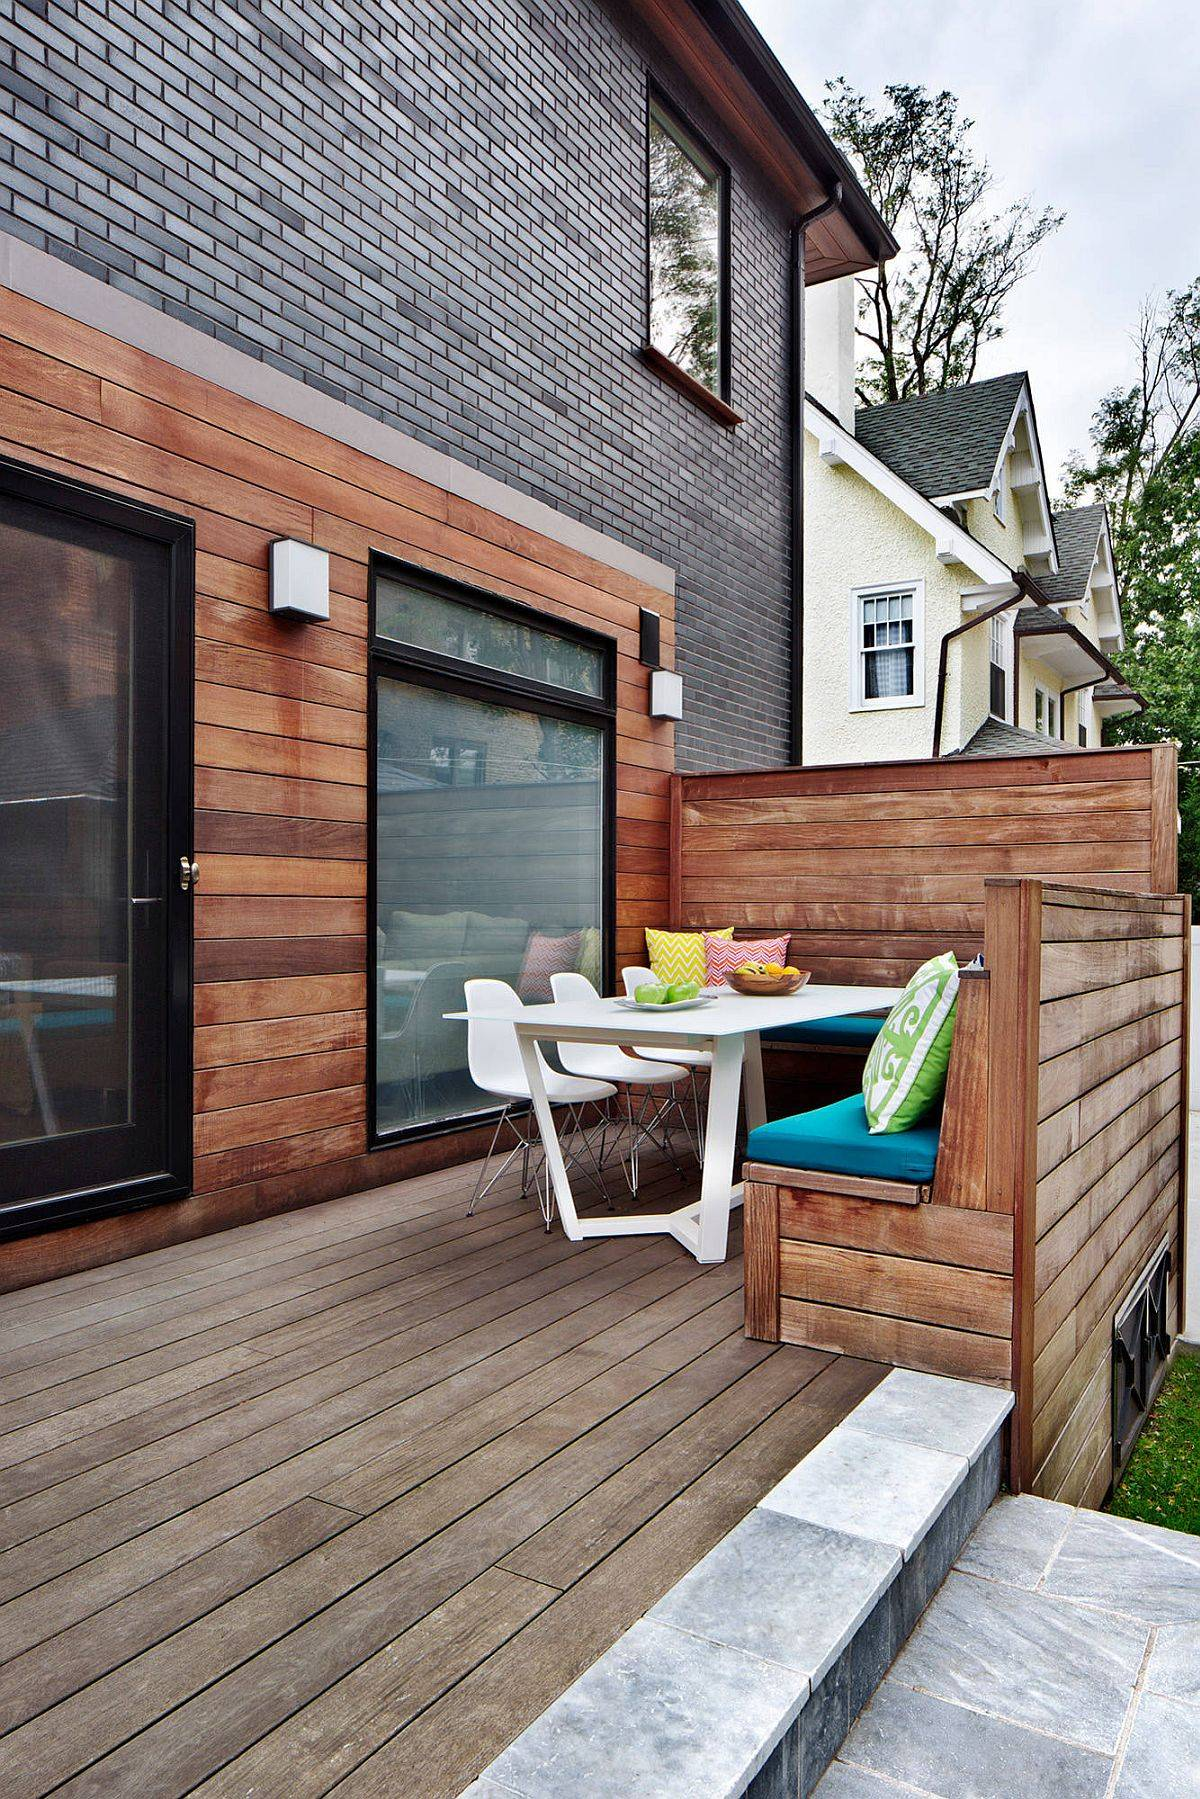 colorful pillows and cushions add cheerful charm to the wooden built-in bench on the patio